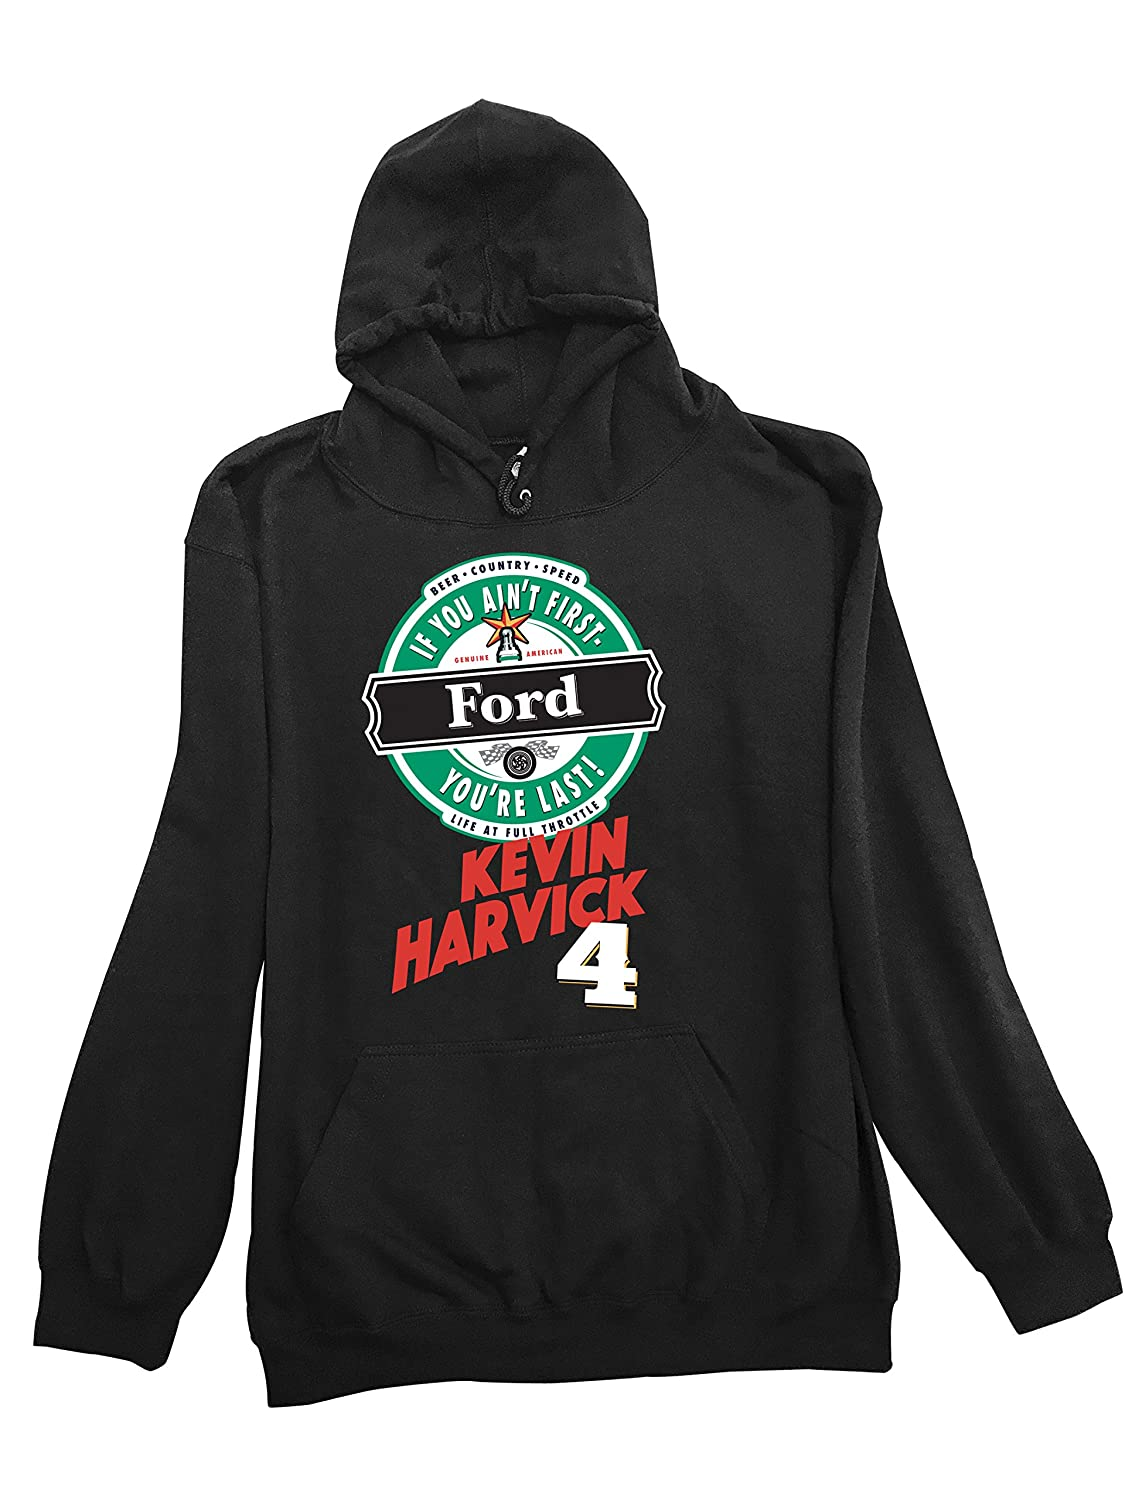 Sizes up to 3XL Kevin Harvick Hooded Sweatshirt